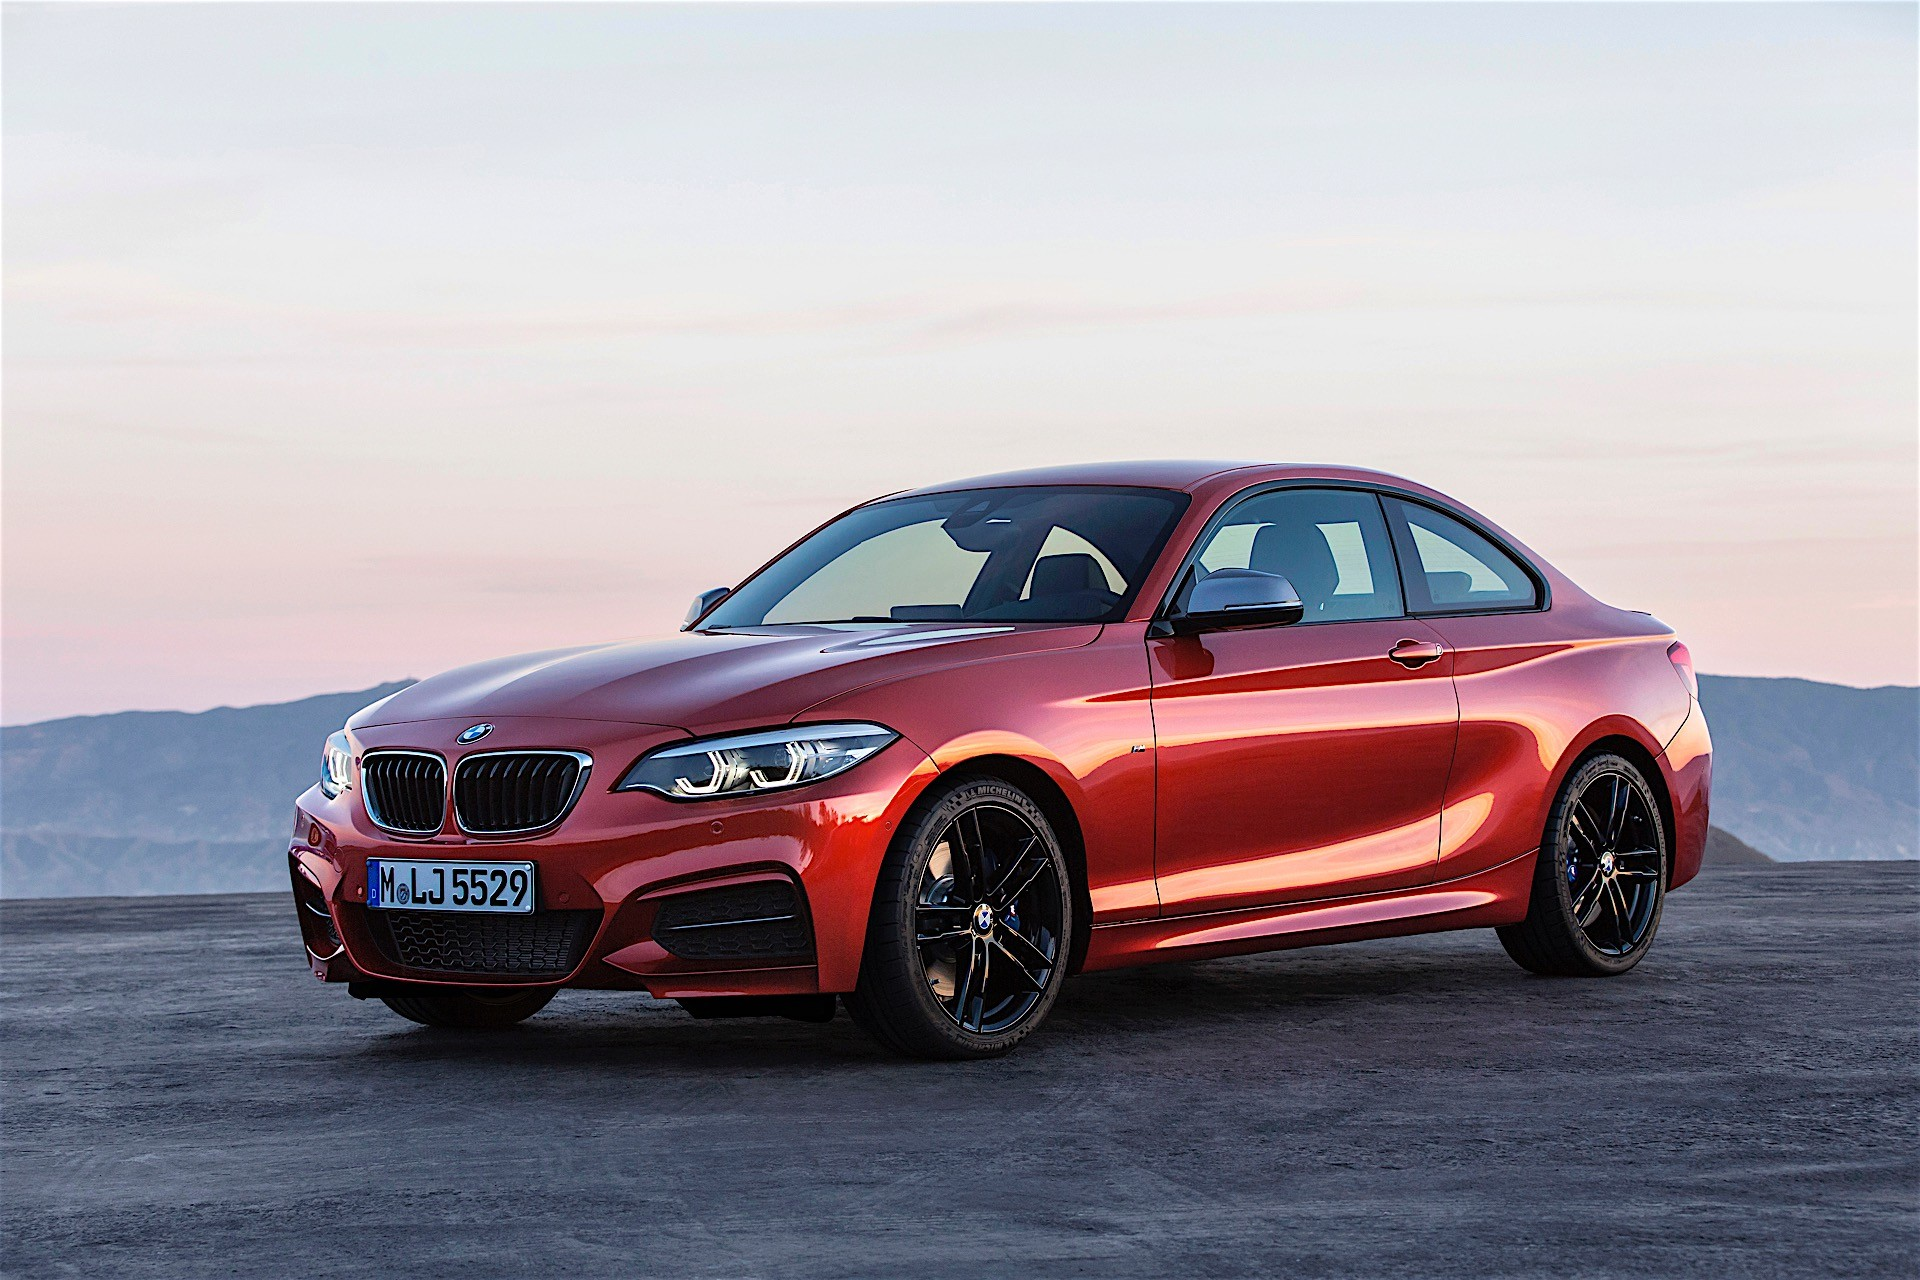 bmw 2 series coupe and cabrio get a subtle facelift they look just right autoevolution. Black Bedroom Furniture Sets. Home Design Ideas